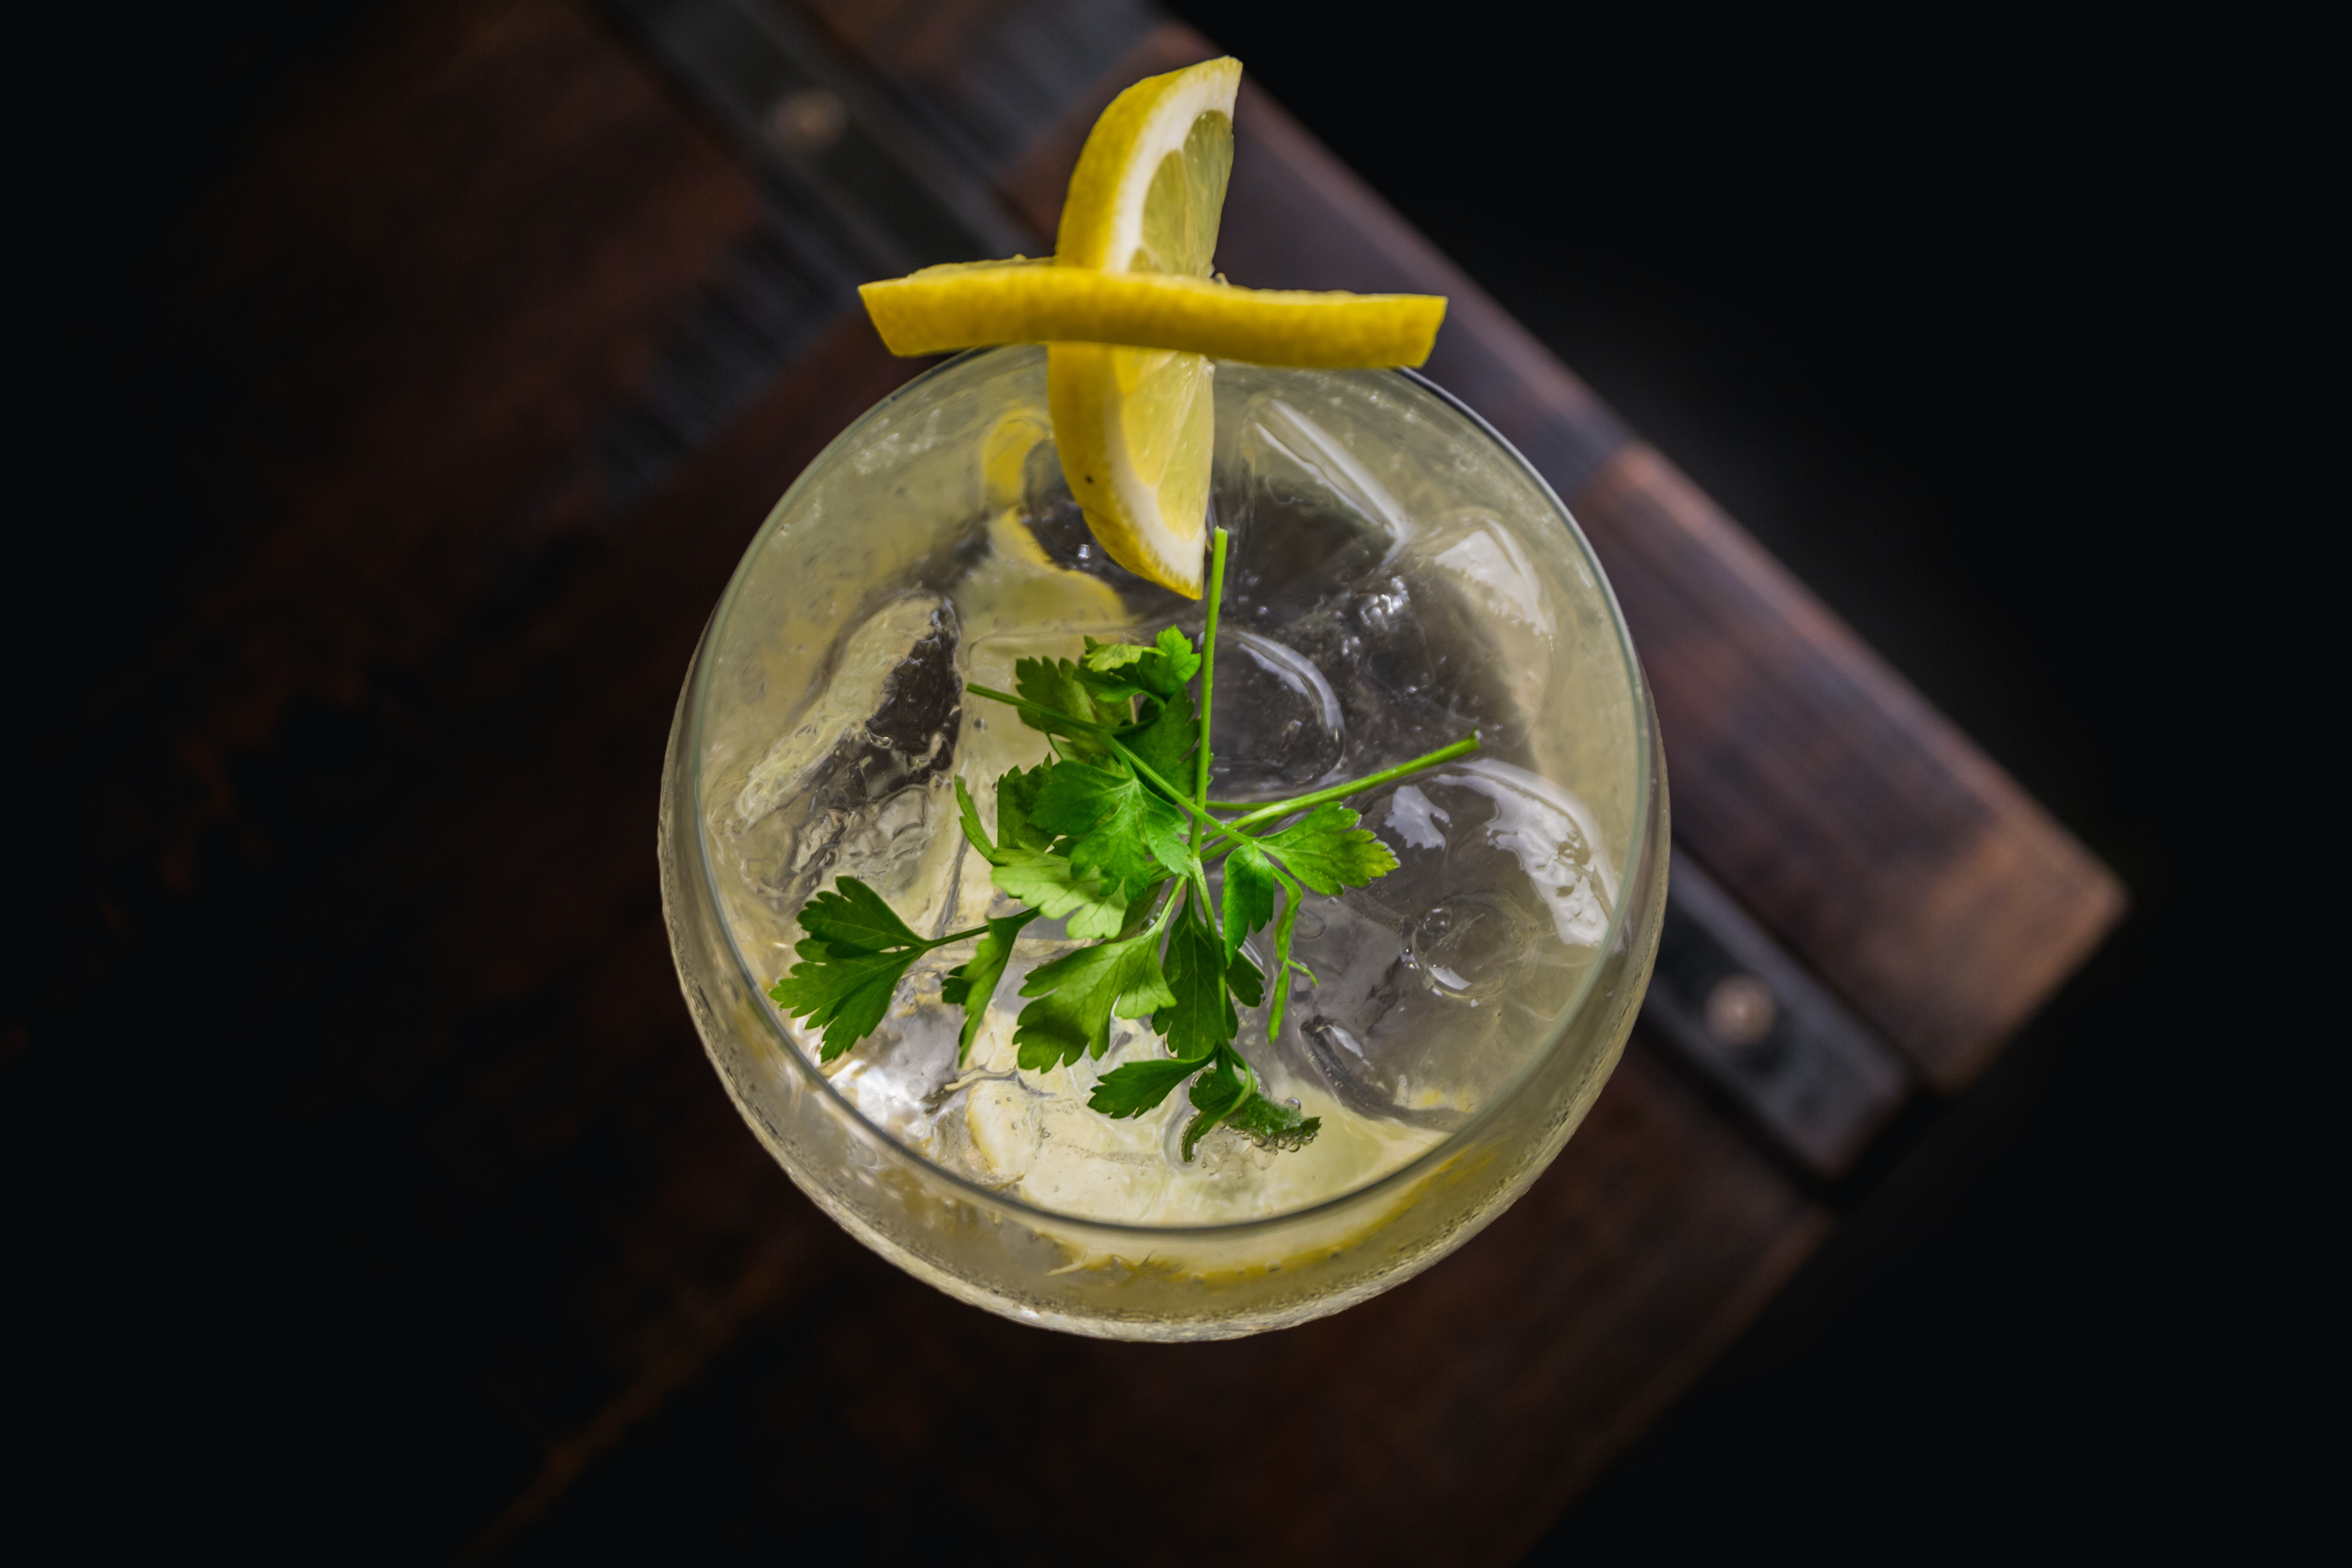 A glass of gin garnished with lemon and coriander